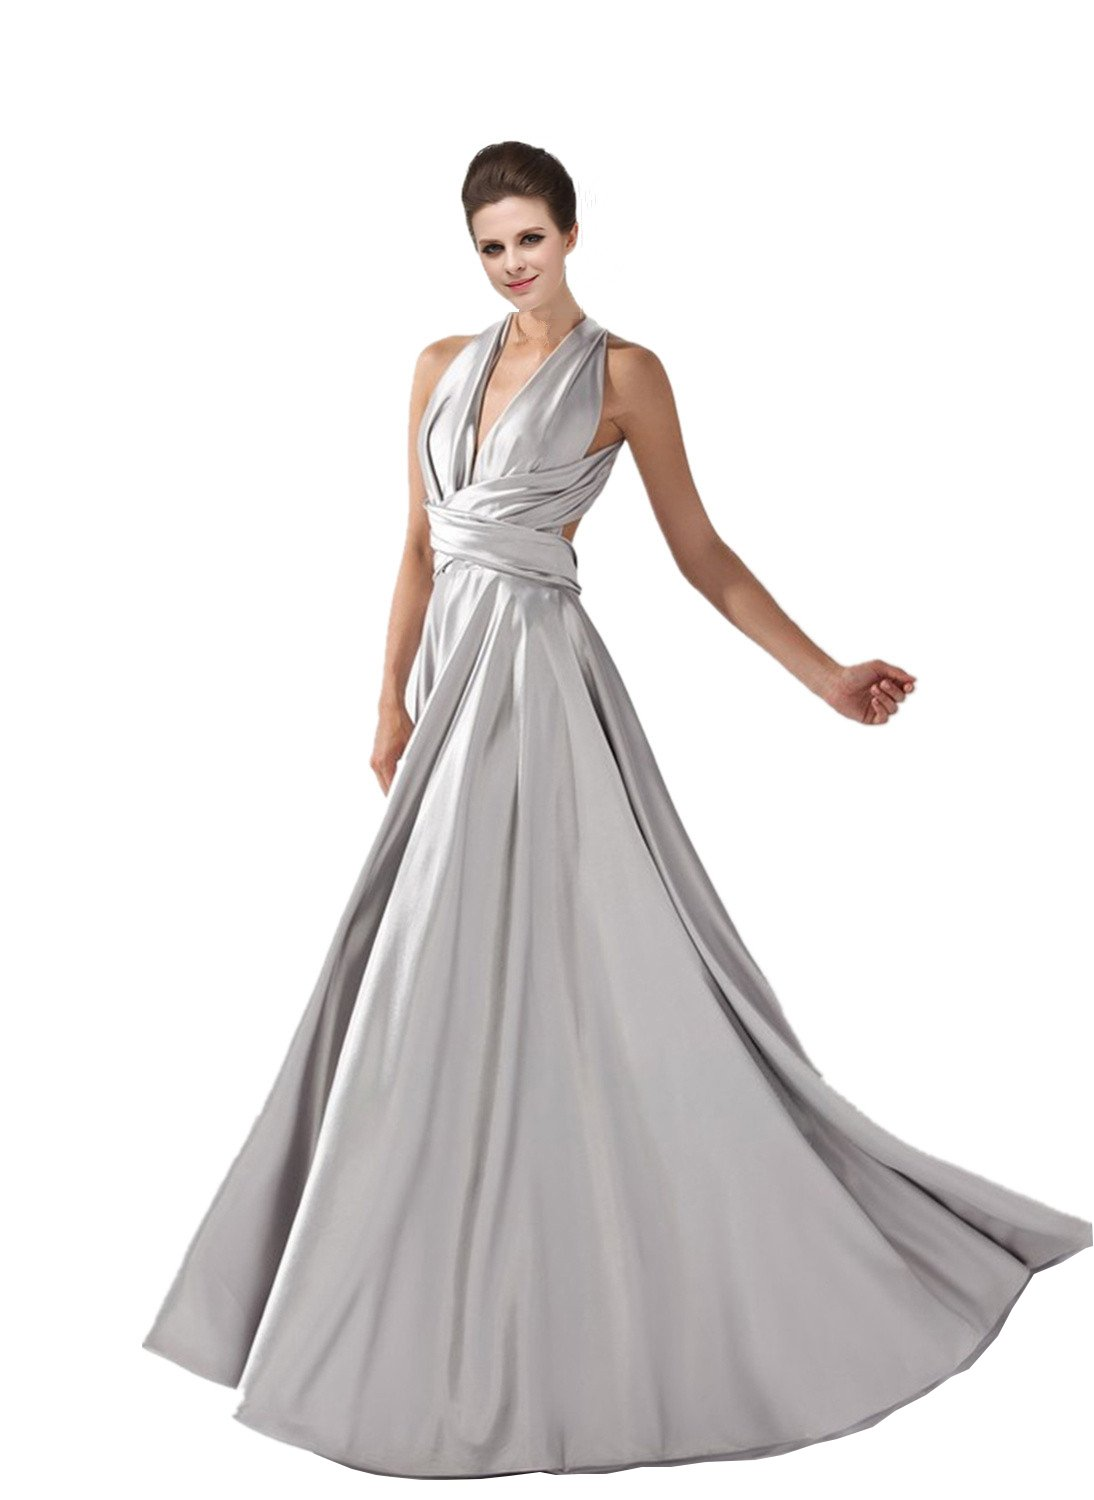 SZ1024 Women's Multivariant style Long Formal Evening Dresses Variety Model Prom Gowns Size 8